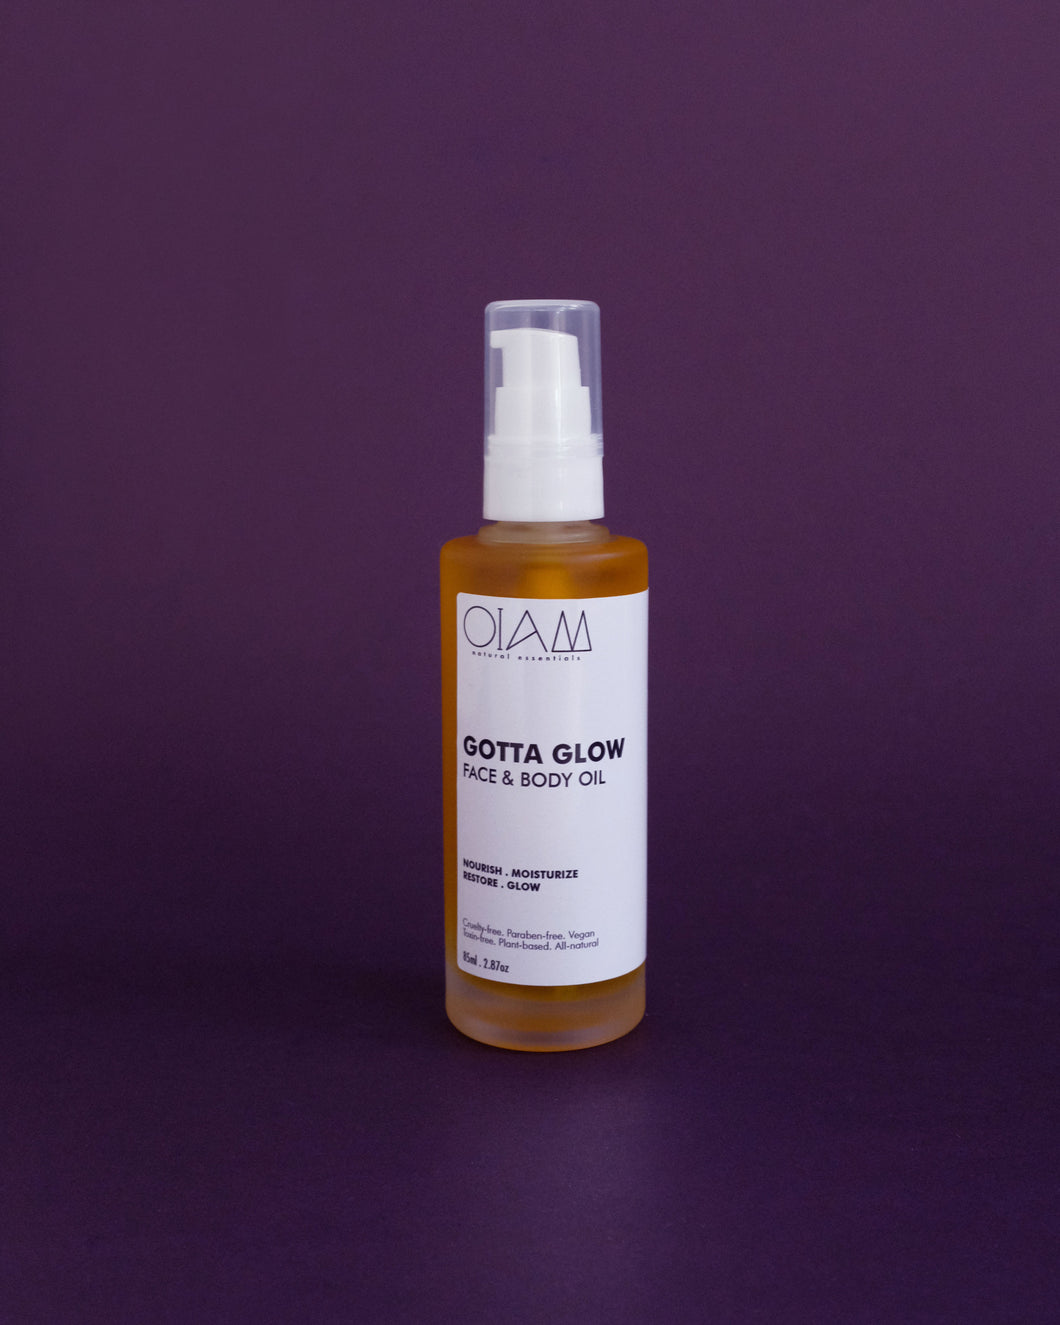 OIAM Gotta Glow Face & Body Oil - Loop.